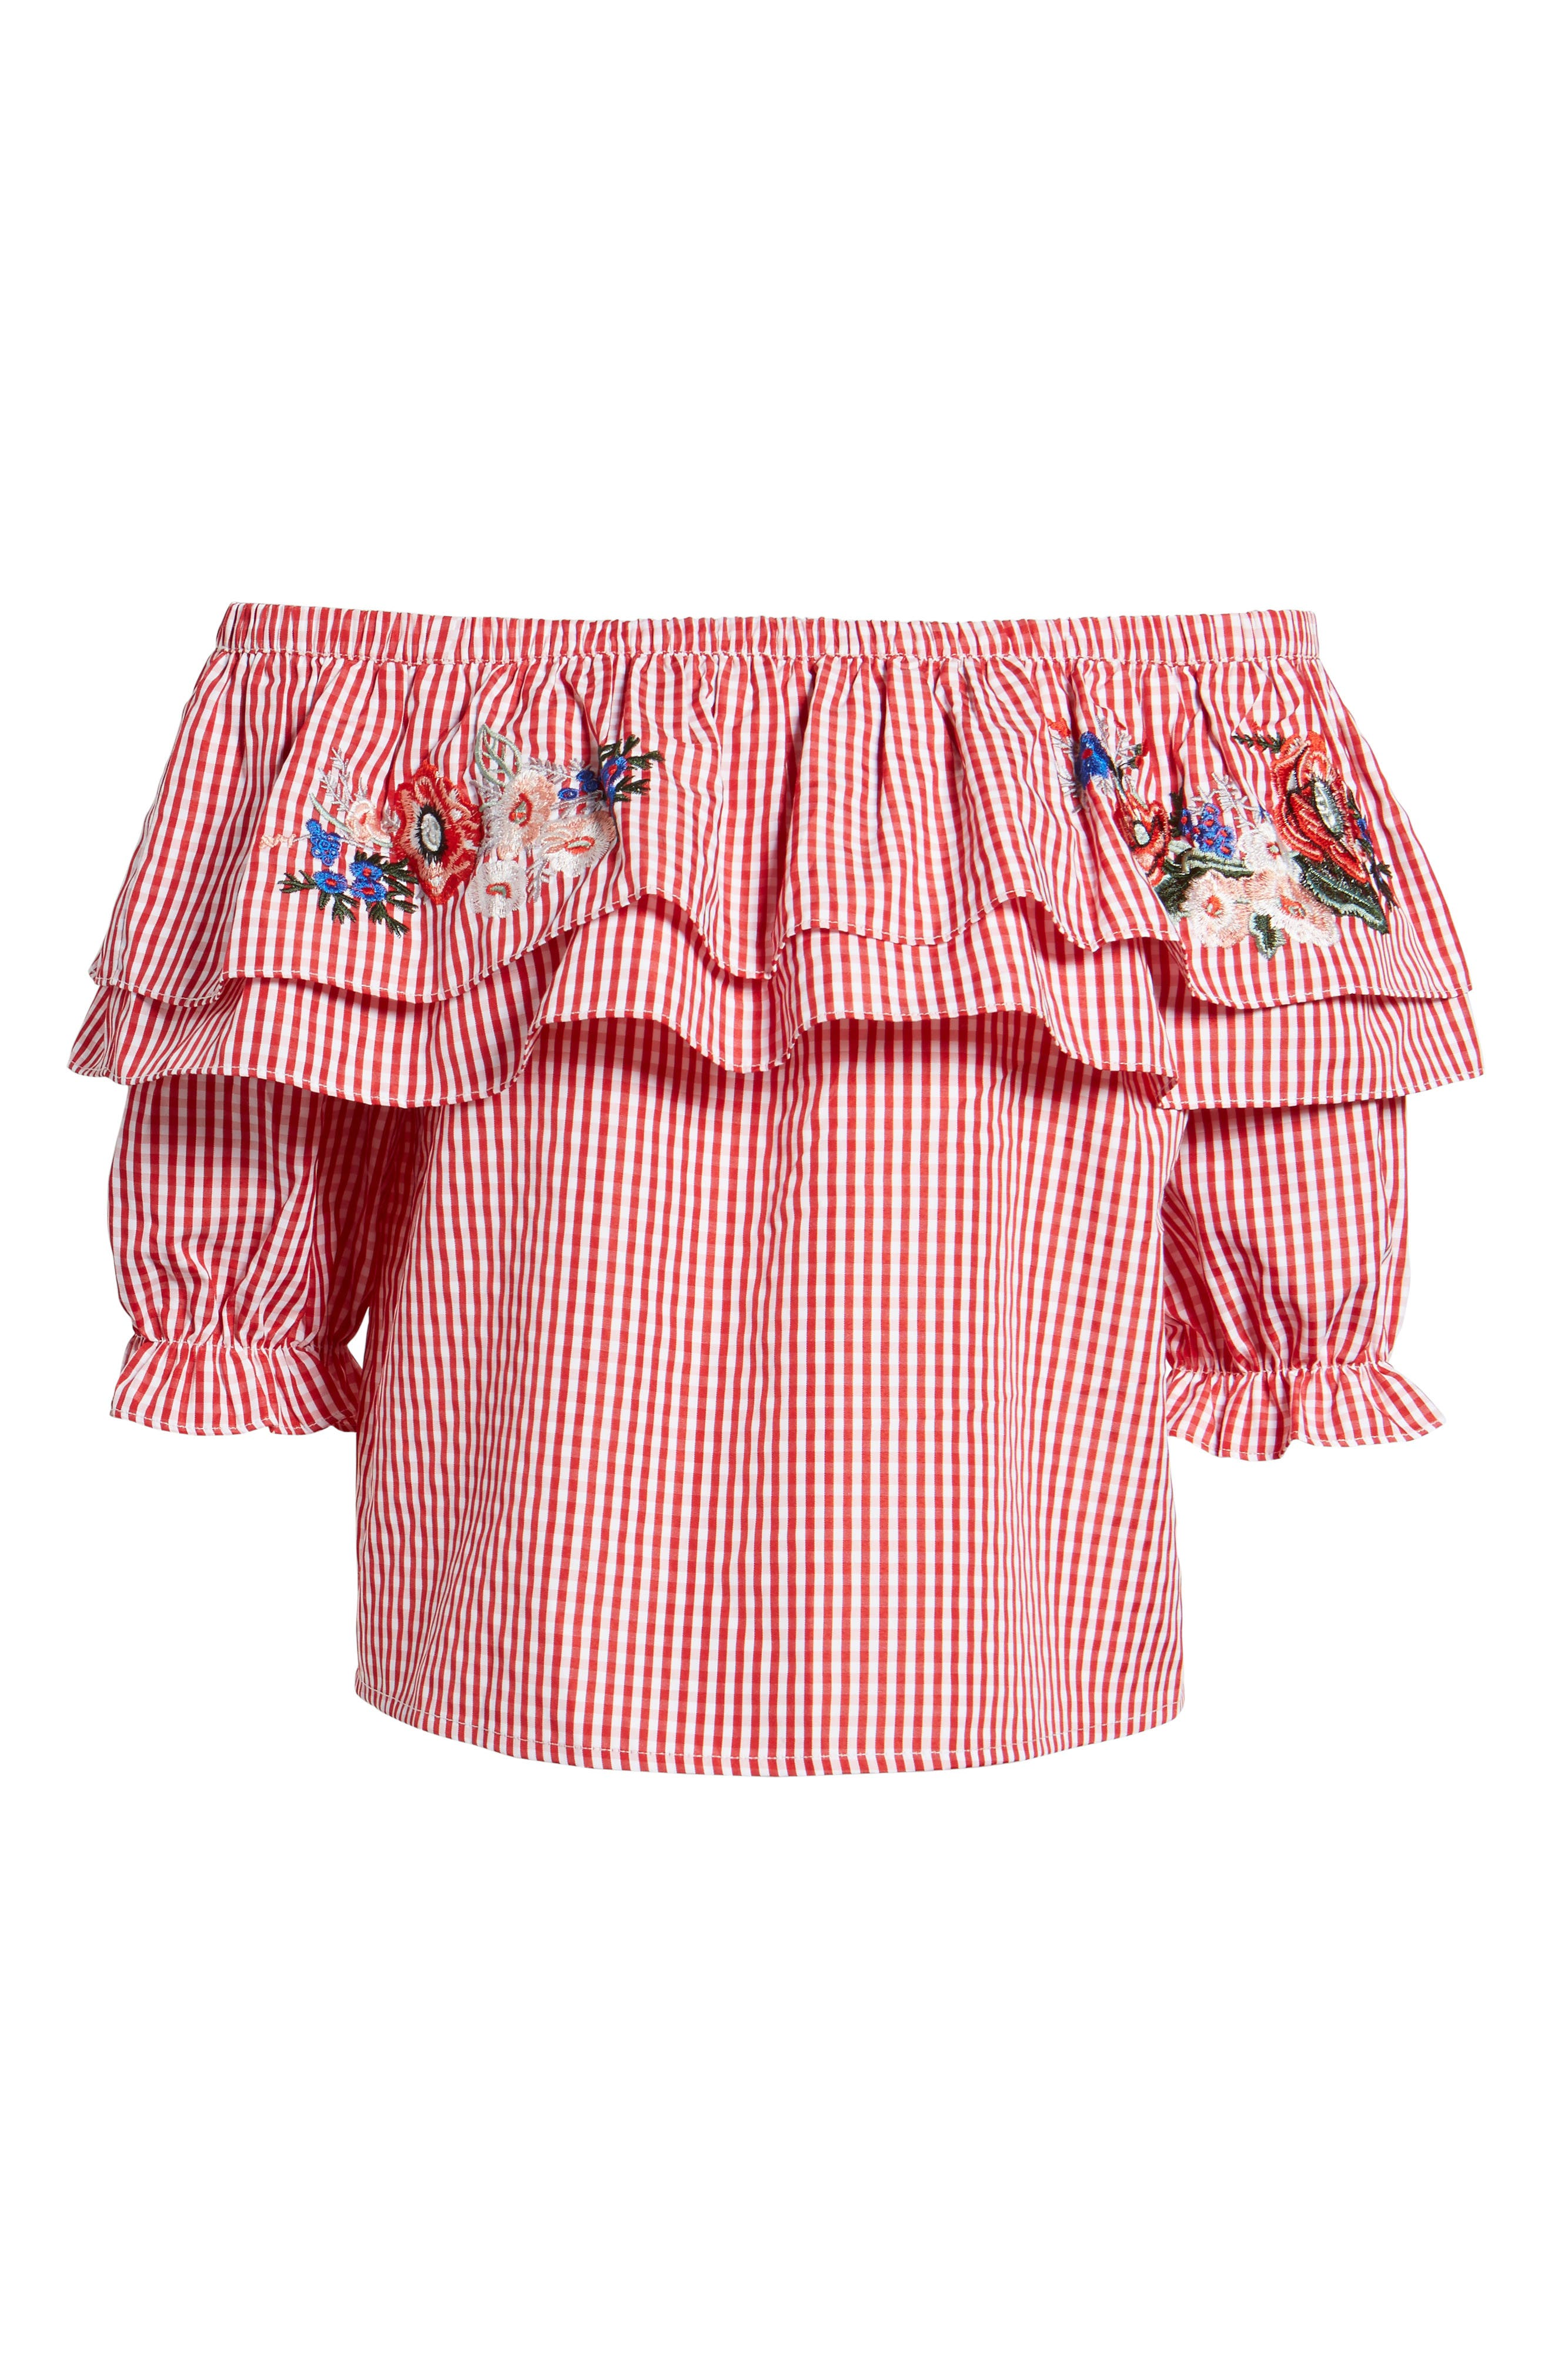 LOST + WANDER, Embroidered Gingham Off the Shoulder Top, Alternate thumbnail 6, color, 640